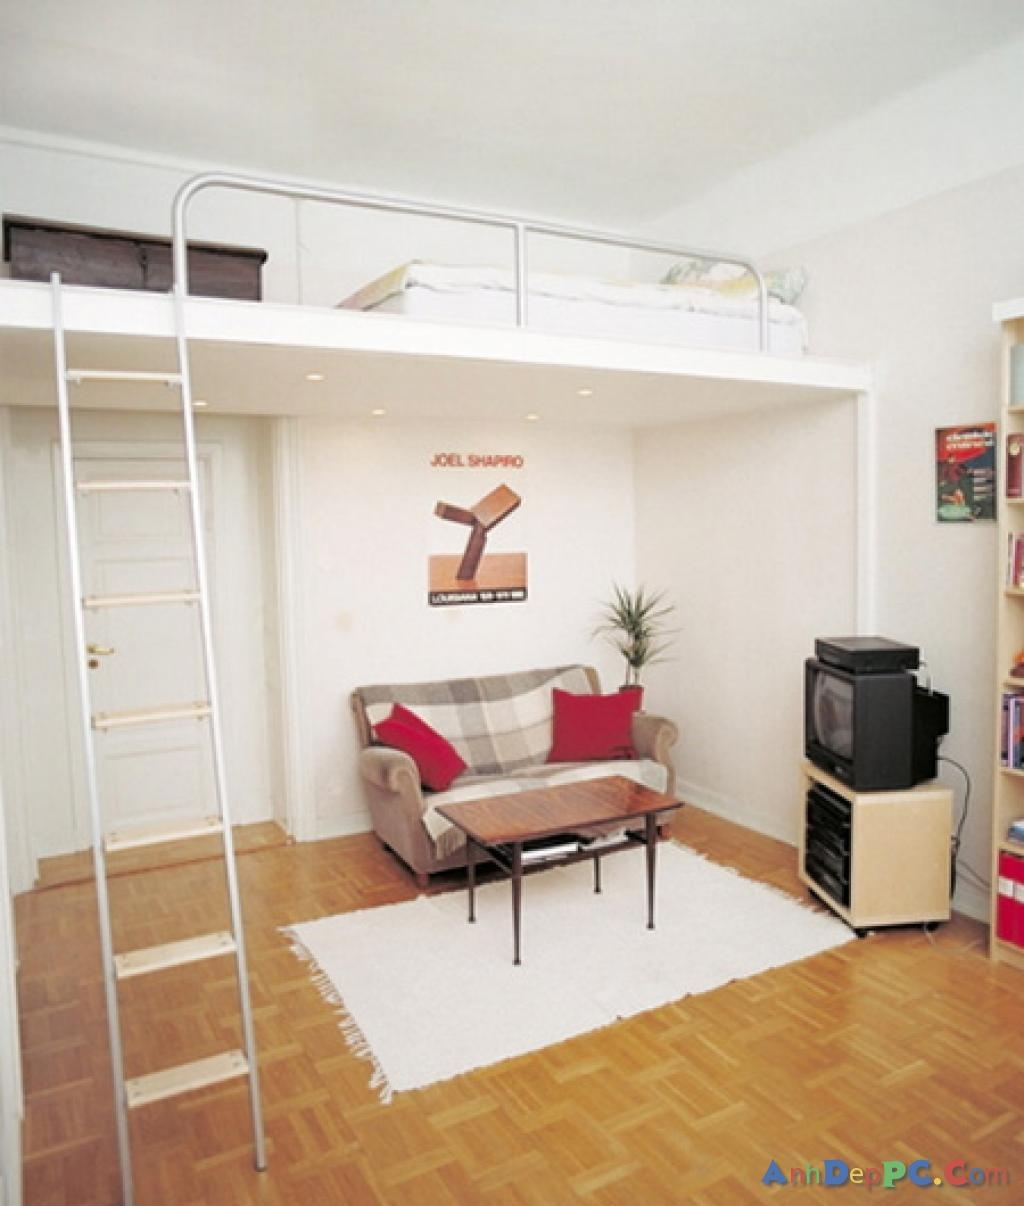 Space Saving Beds For Small Rooms | Bedroom Decor Ideas